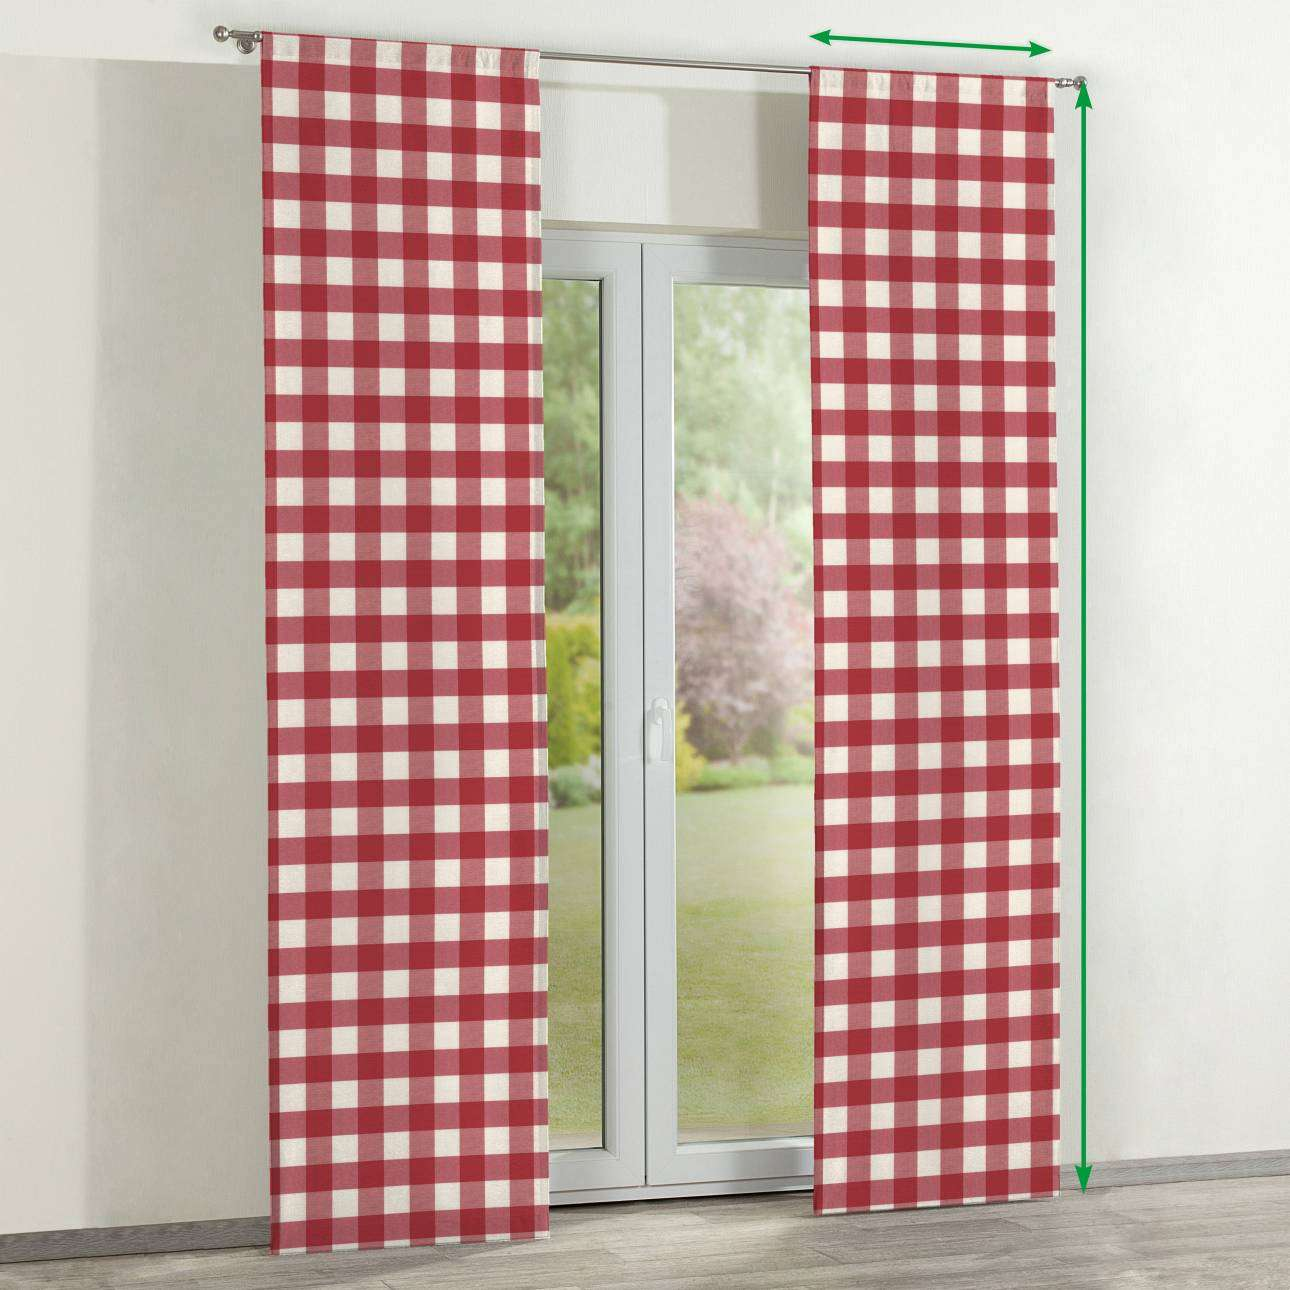 Slot panel curtains – Set of 2 in collection Quadro, fabric: 136-18